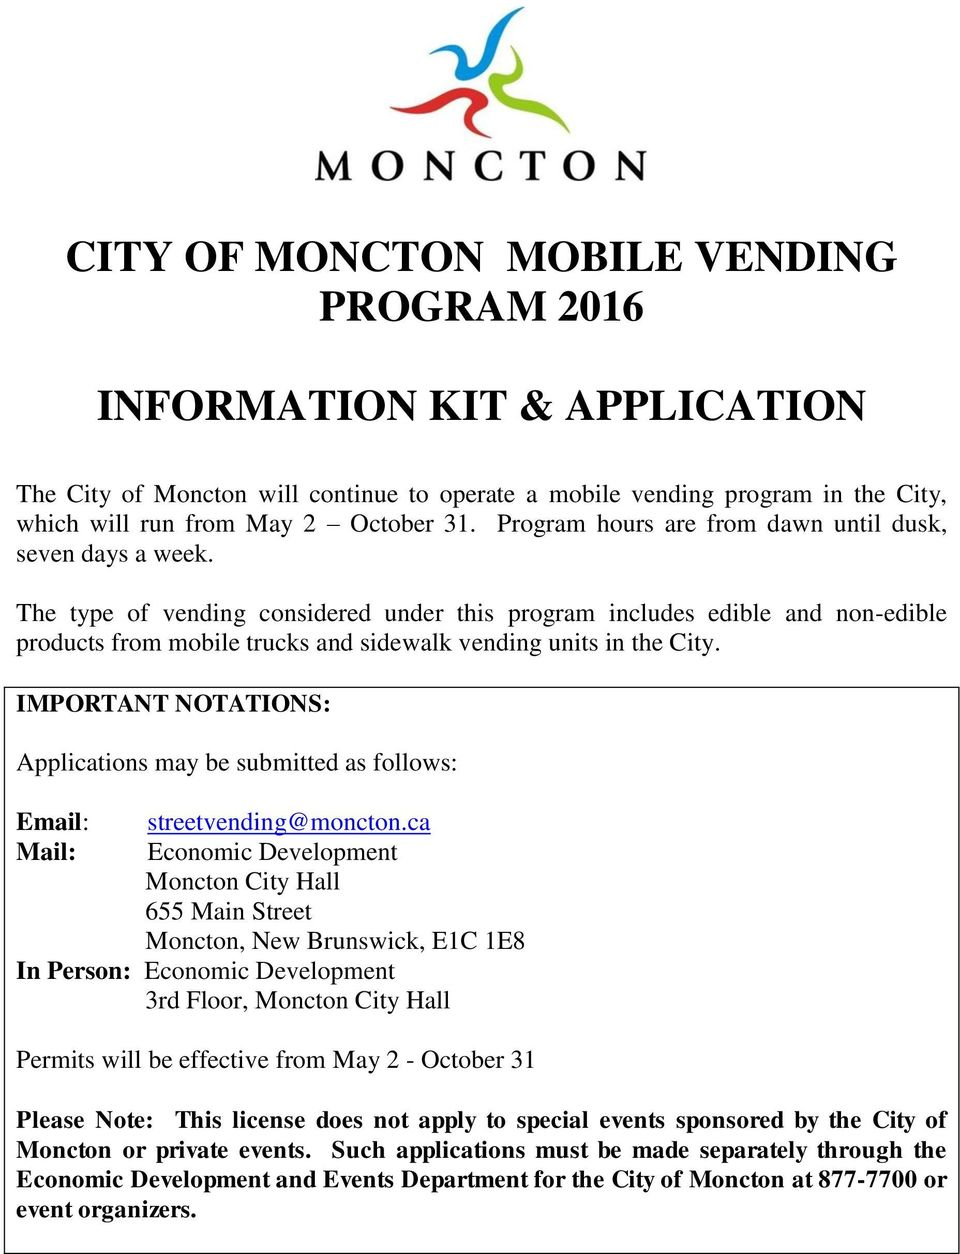 The type of vending considered under this program includes edible and non-edible products from mobile trucks and sidewalk vending units in the City.